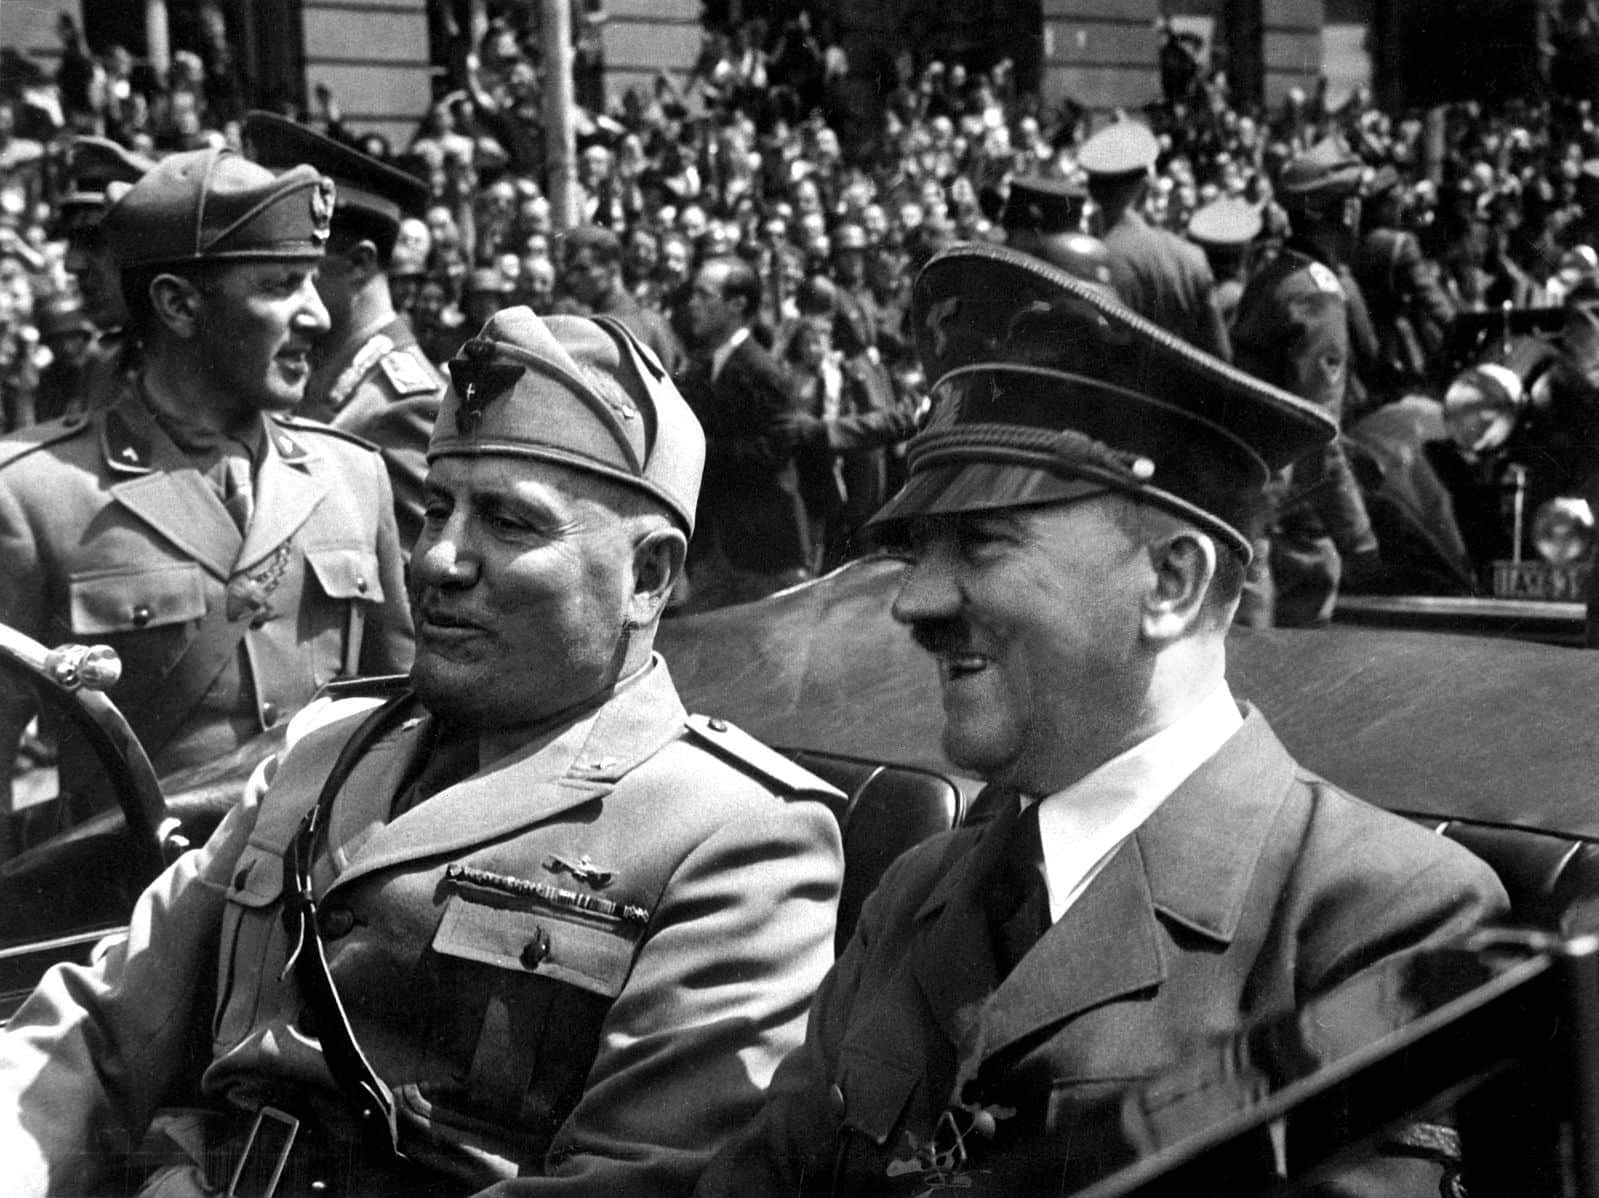 Adolf Hitler et Benito Mussolini, ensemble en juin 1940. ©WikimediaCommons Author : Eva Braun's Photo Album